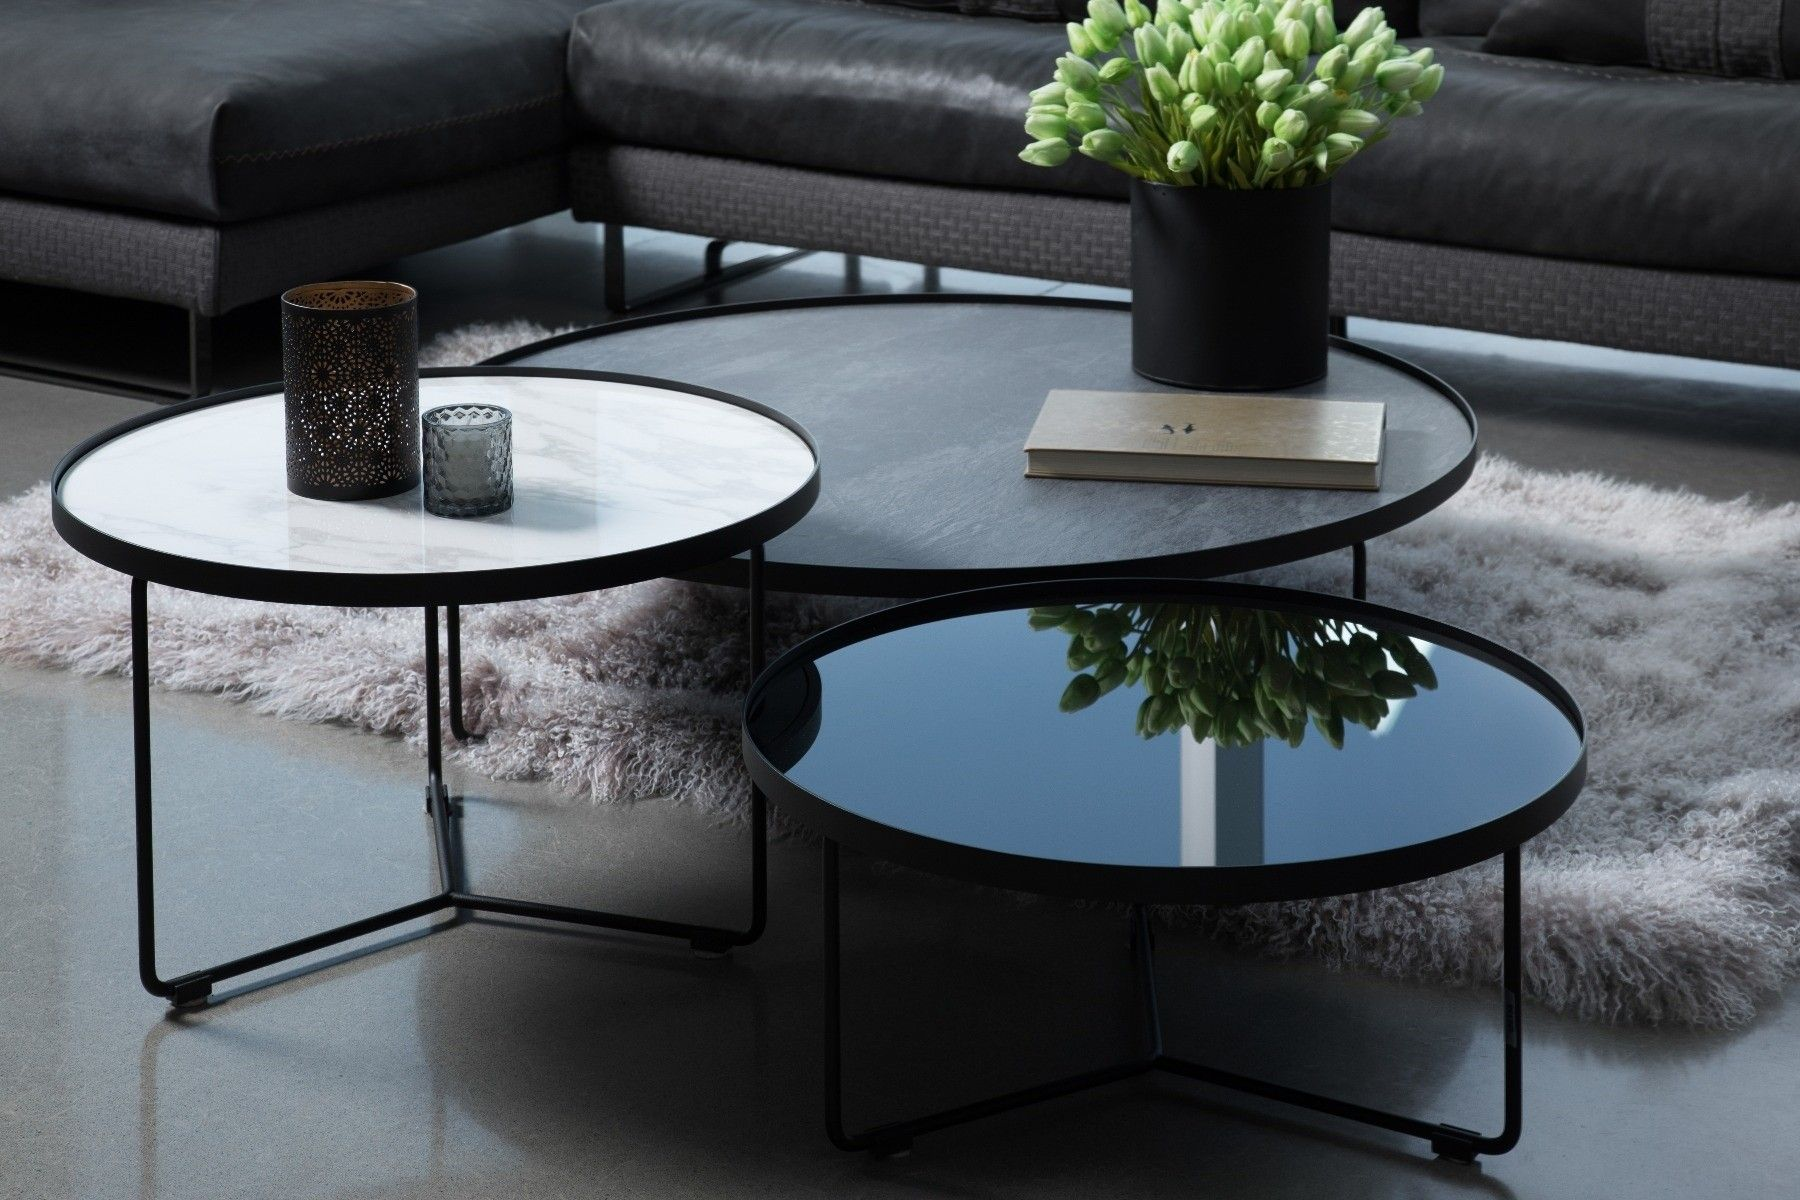 Billy Table Basse Circulaire Maison Corbeil In 2020 Round Coffee Table Nesting Coffee Tables Coffee Table Design